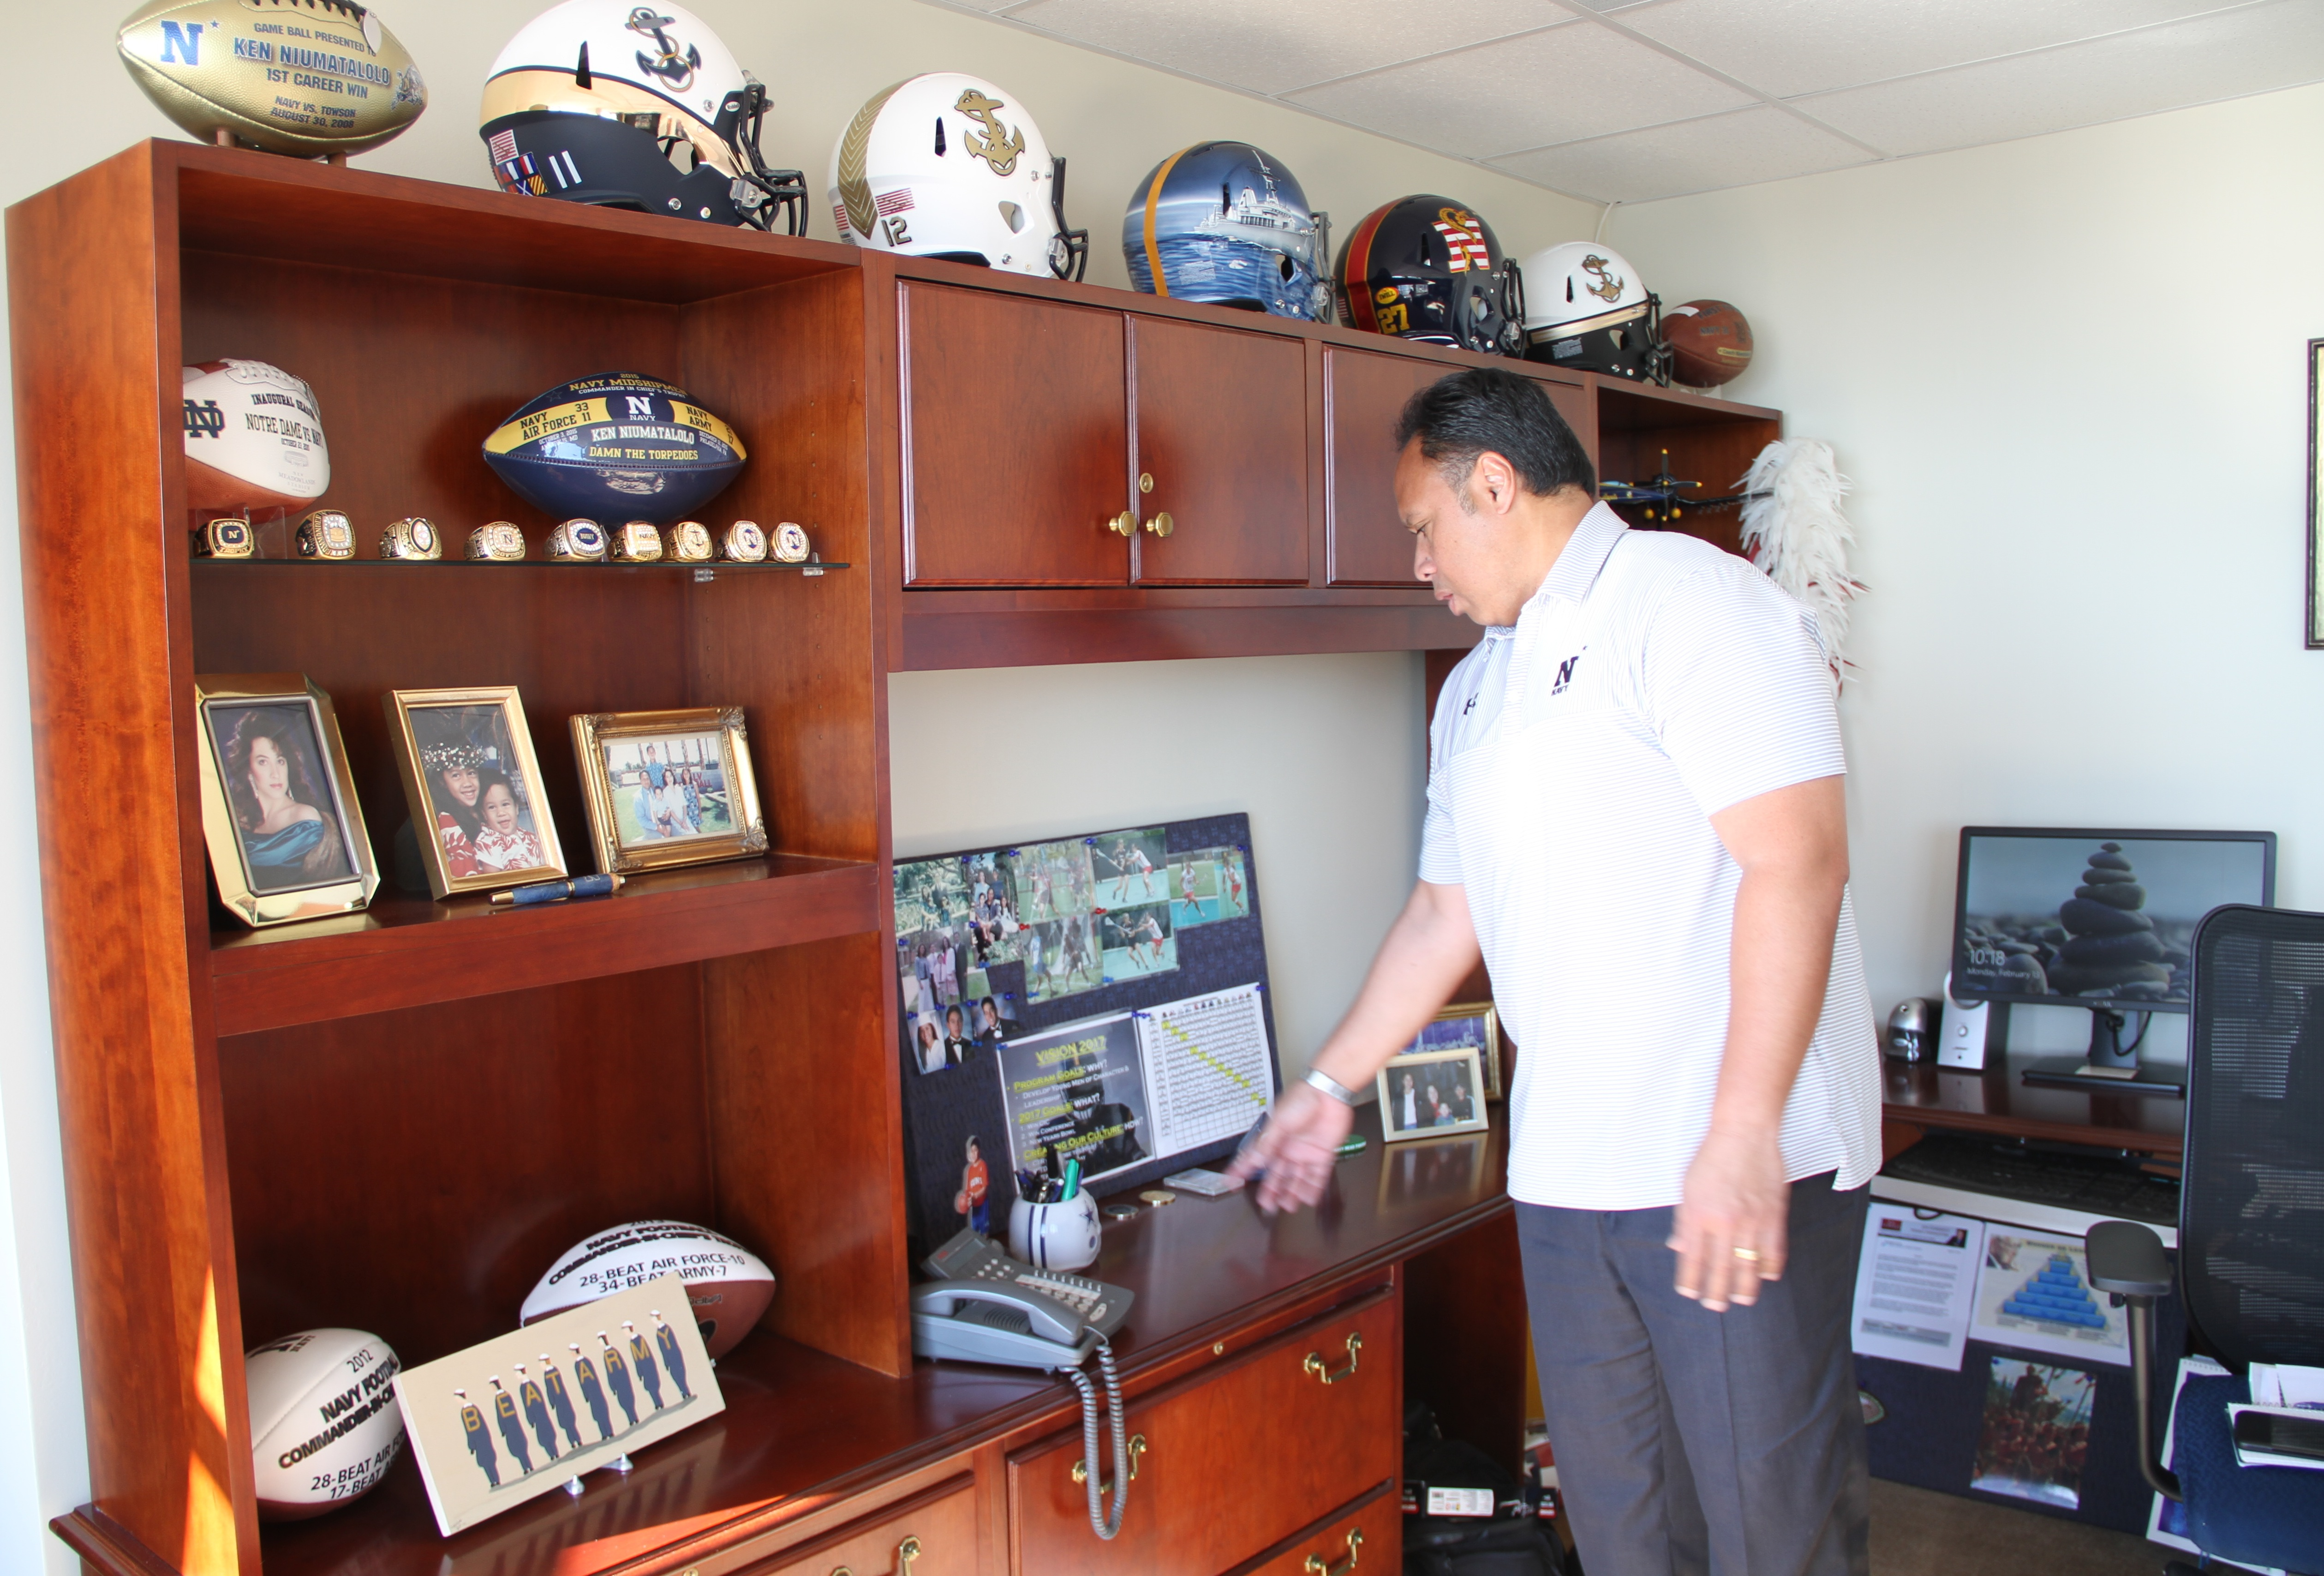 Multi-layed shelf in Navy coach Ken Niumatalolo's office is adorned with football helmets and other memorabilia reflective of his success at the U.S. service academy in Annapolis.